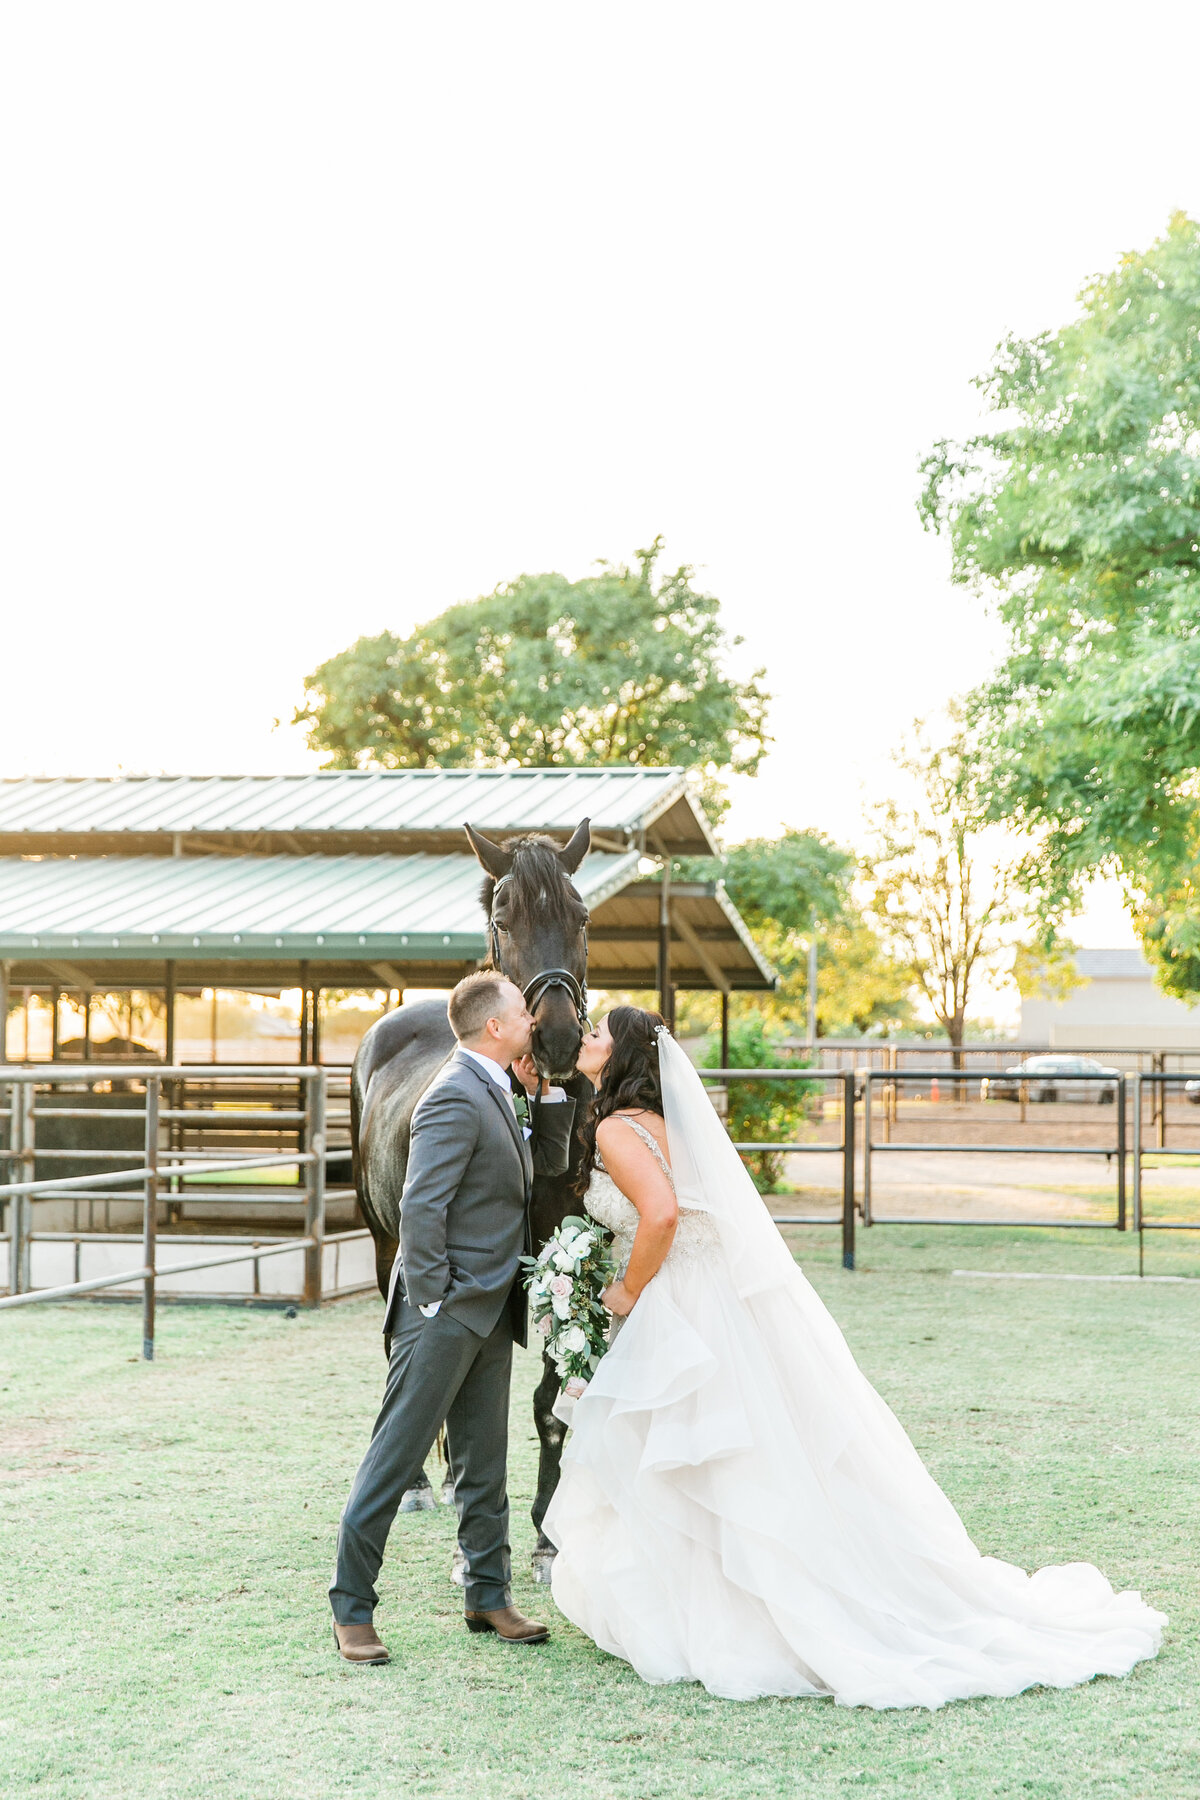 Karlie Colleen Photography - Glendale Arizona Backyard ranch wedding - Meghan & Ken-492